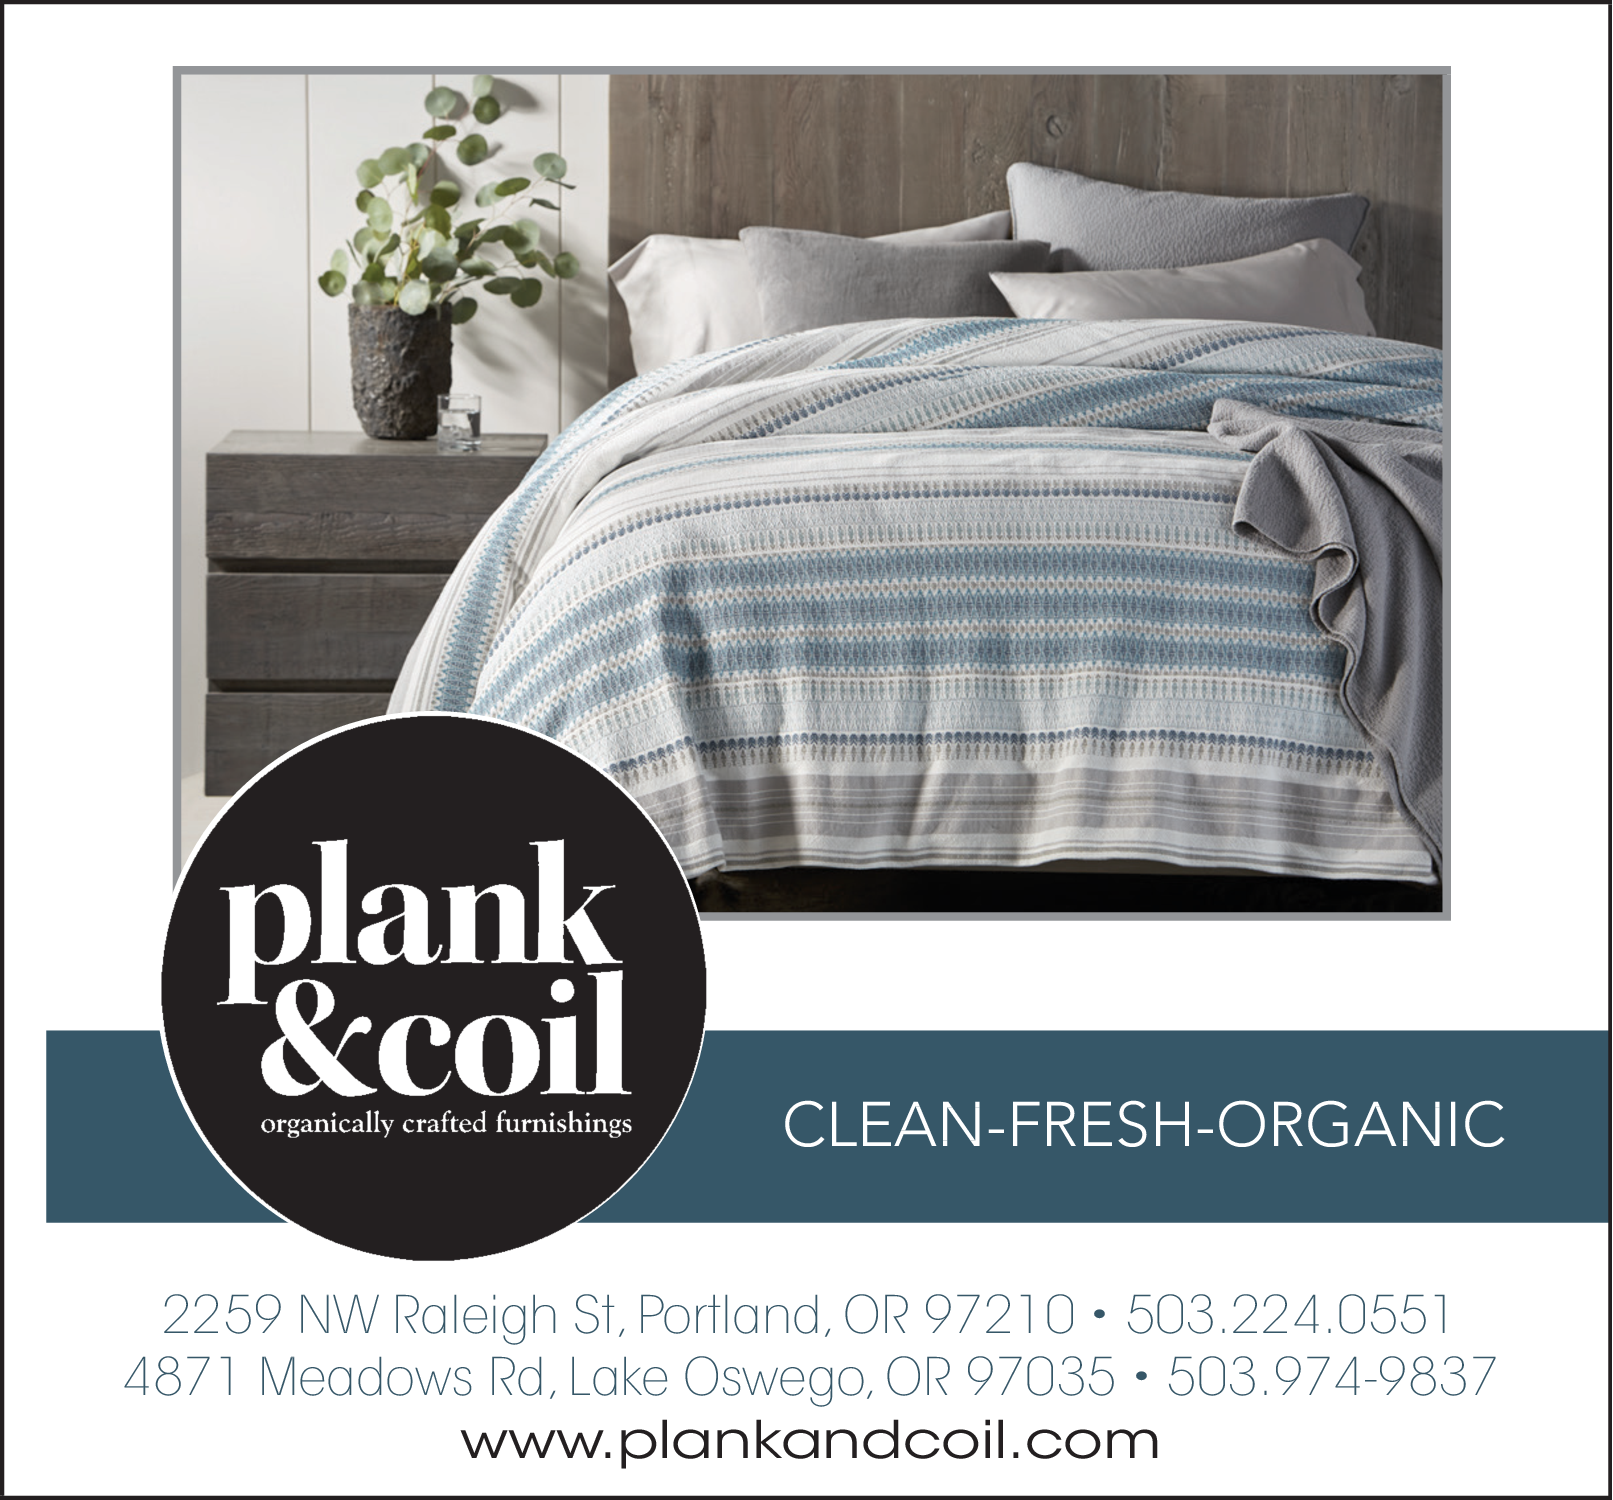 Organic Mattress And Bedding For The Family In Portland OR Home Decor